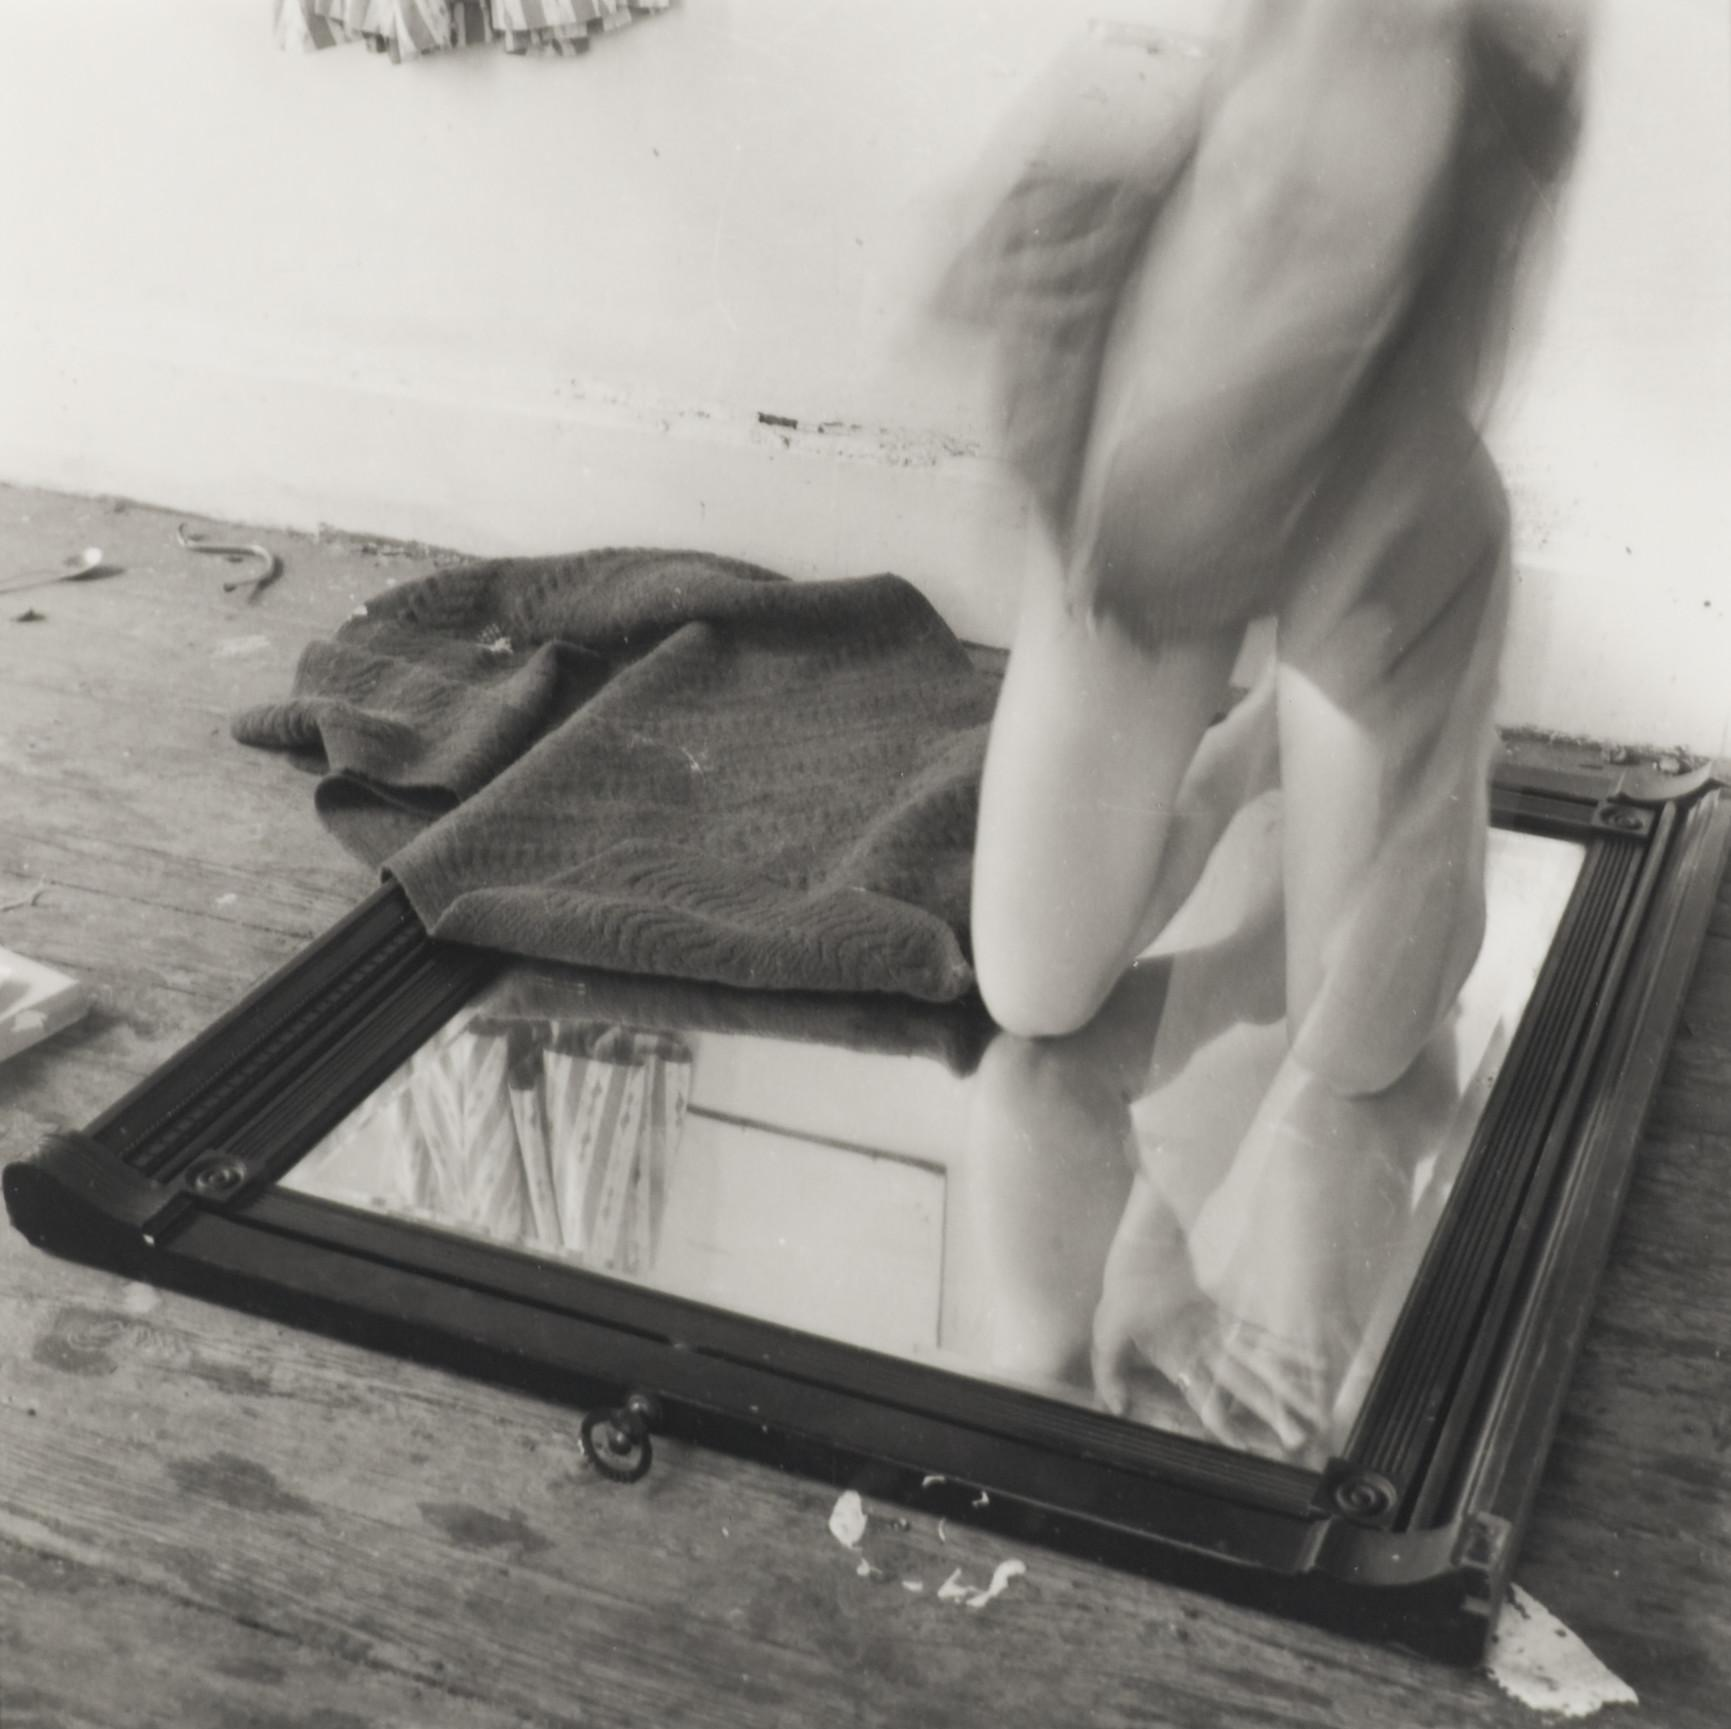 A black-and-white photograph shows a pale-skinned person kneeling on a mirror placed on the floor with a towel covering part of the mirror. The top part of the person's body is in motion and is blurry.